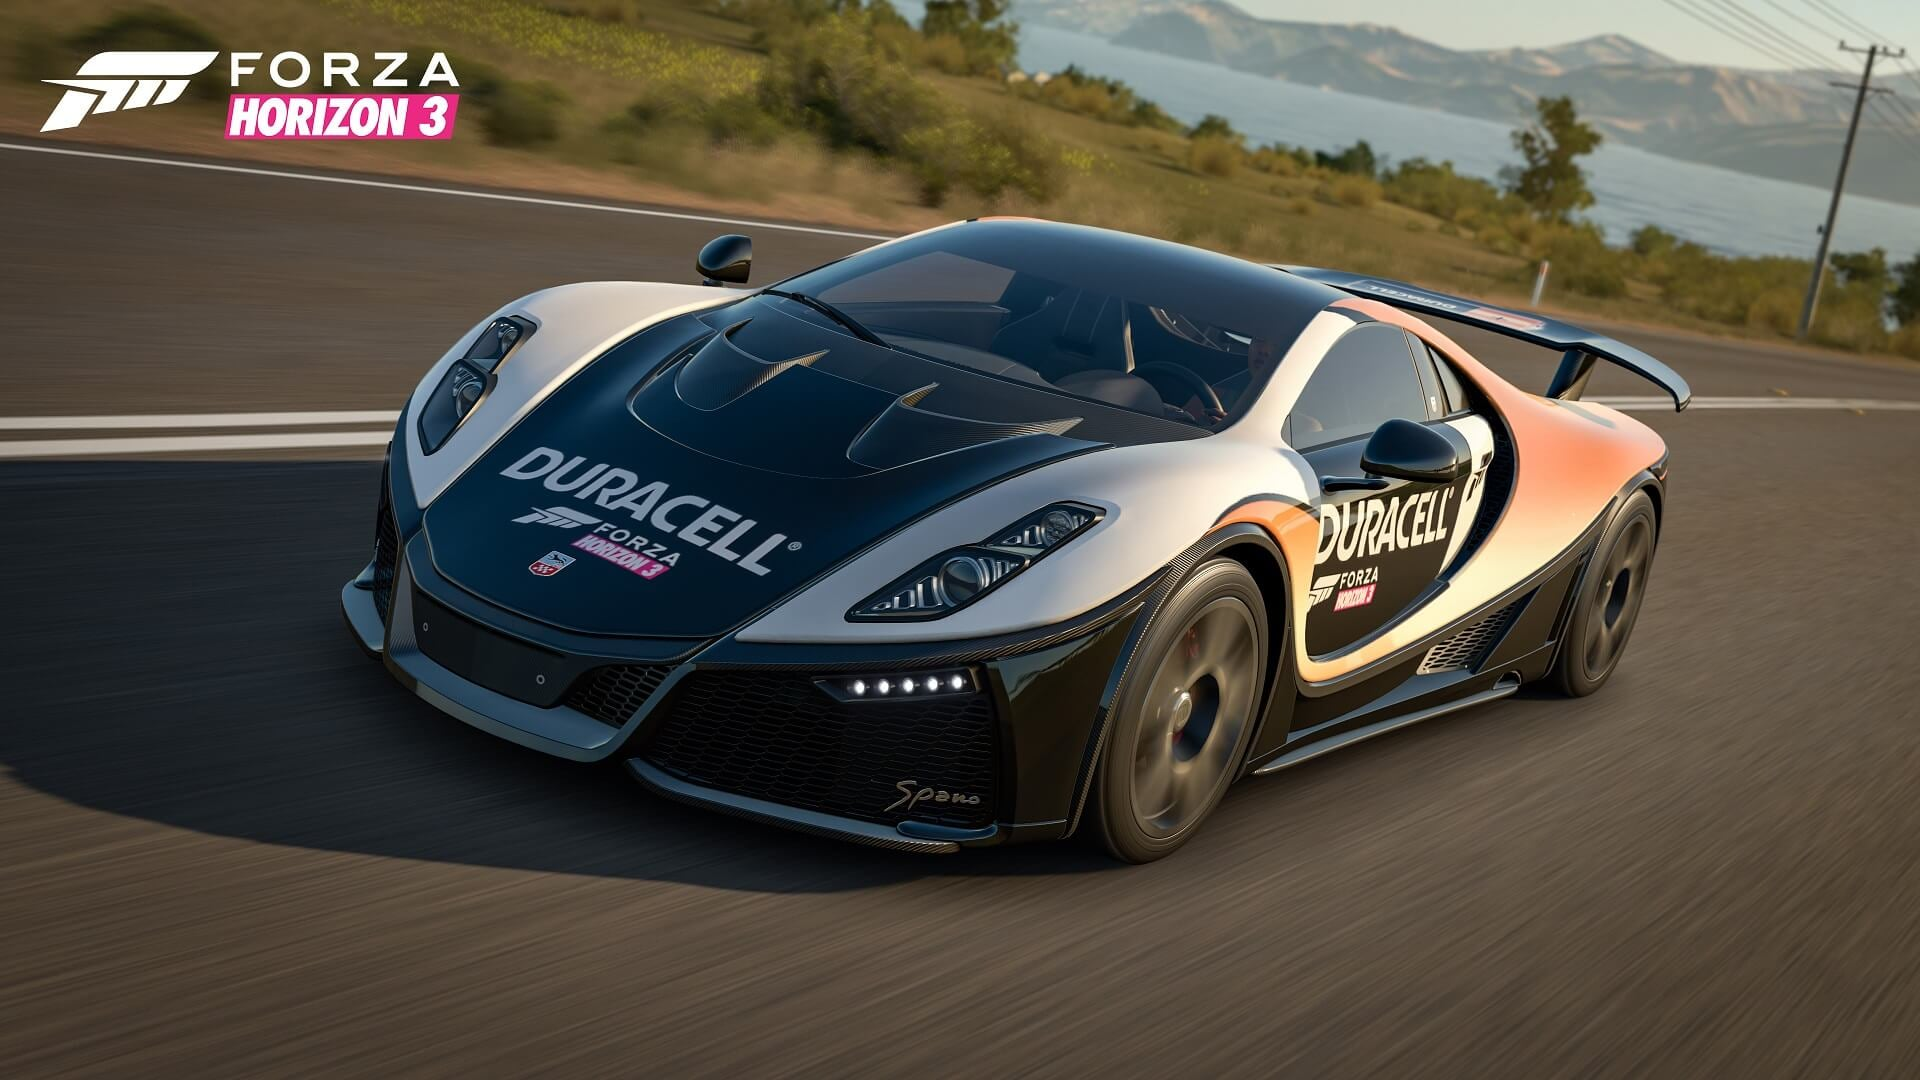 Forza Horizon 3's Duracell Car Pack Now Available